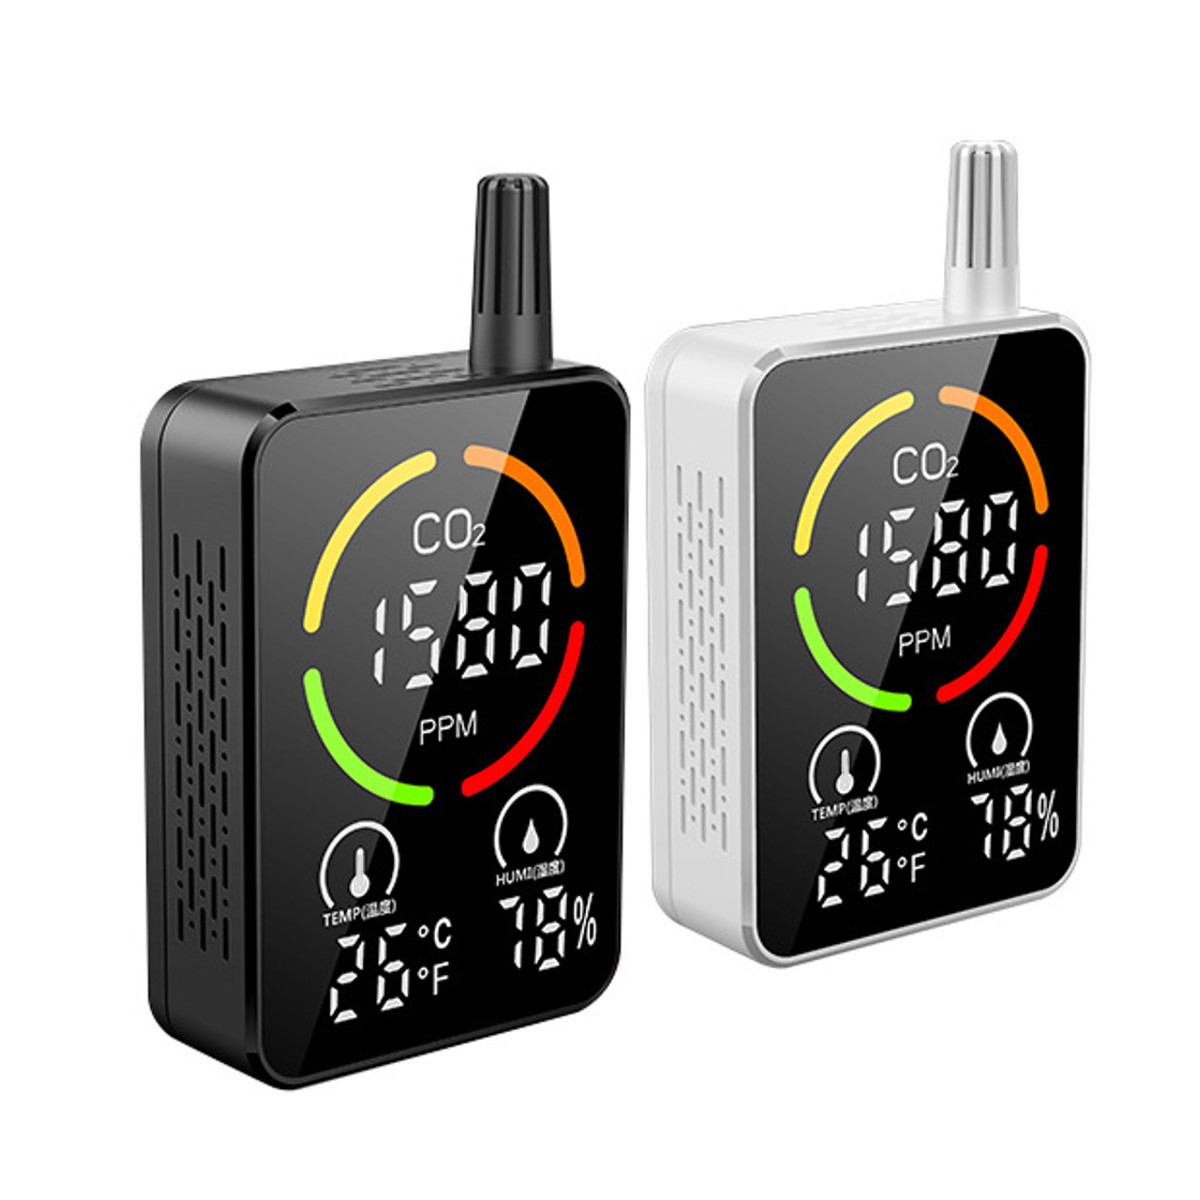 3 in 1 CO2 Temperature Humidity Monitor Infrared Semiconductor Multifunctional Air Quality Detector